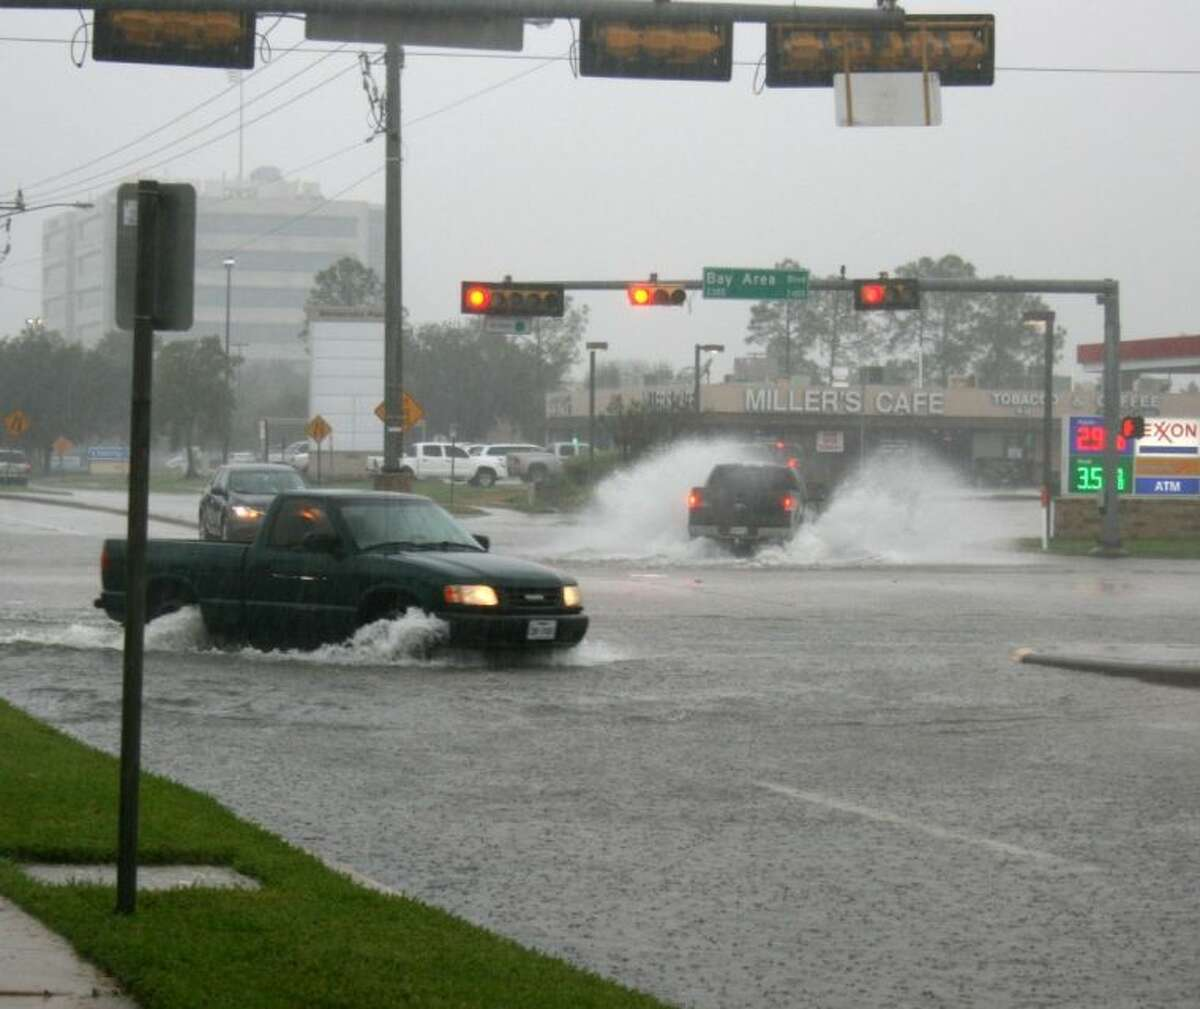 There was street flooding on both sides of Space Center at the Bay Area intersection.